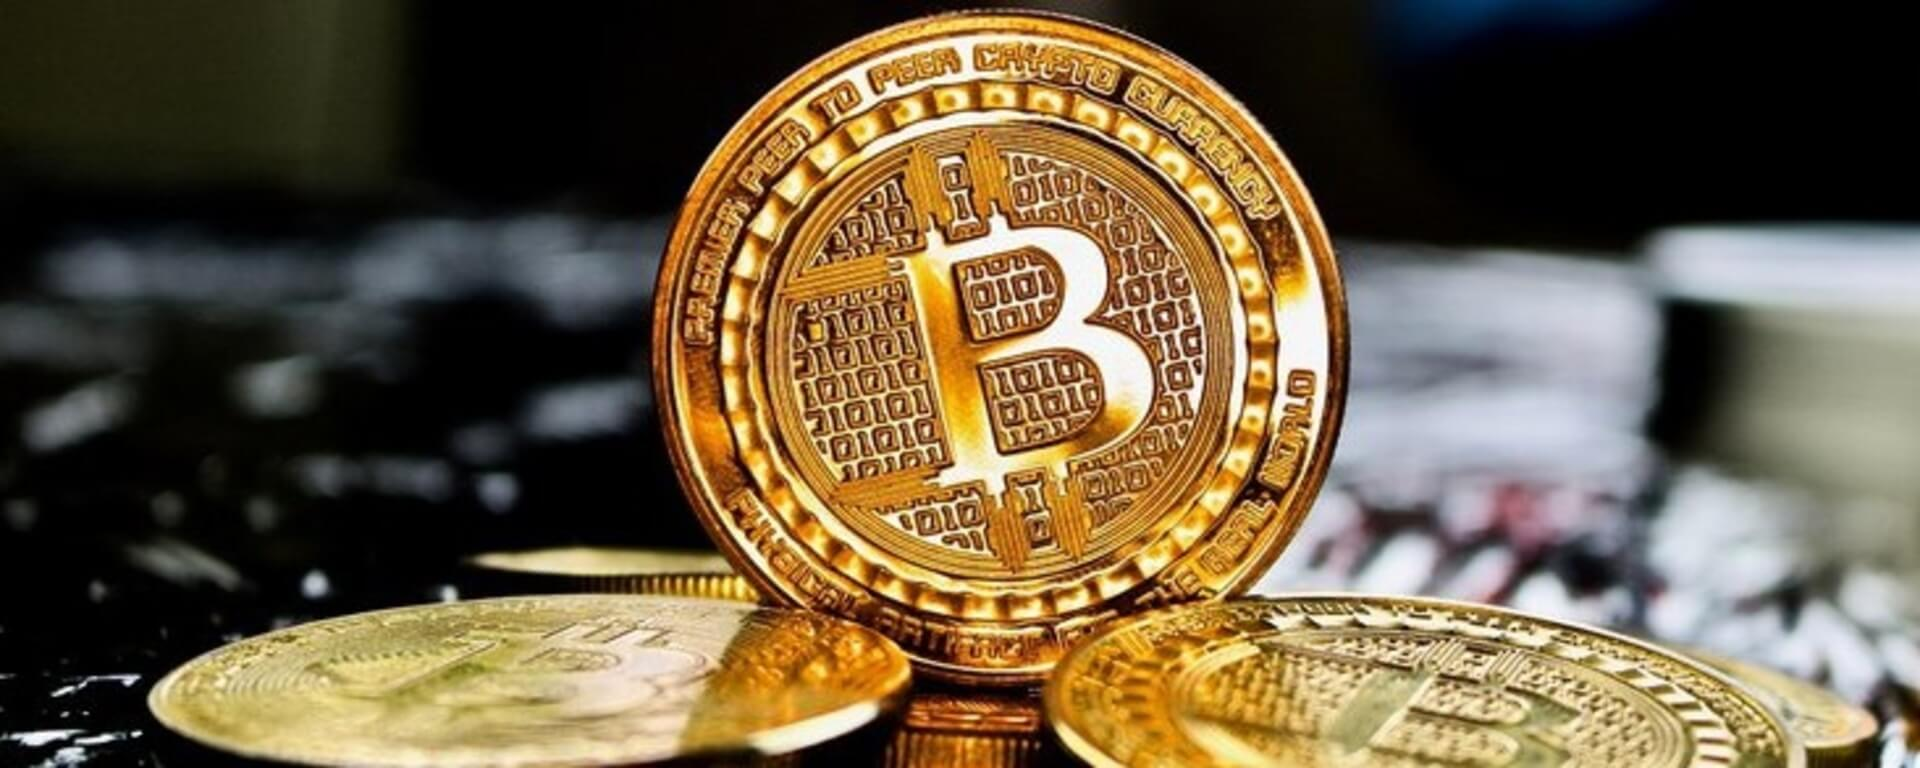 Bloomberg says the US dollar has no intrinsic value. Is it time for Bitcoin? 23